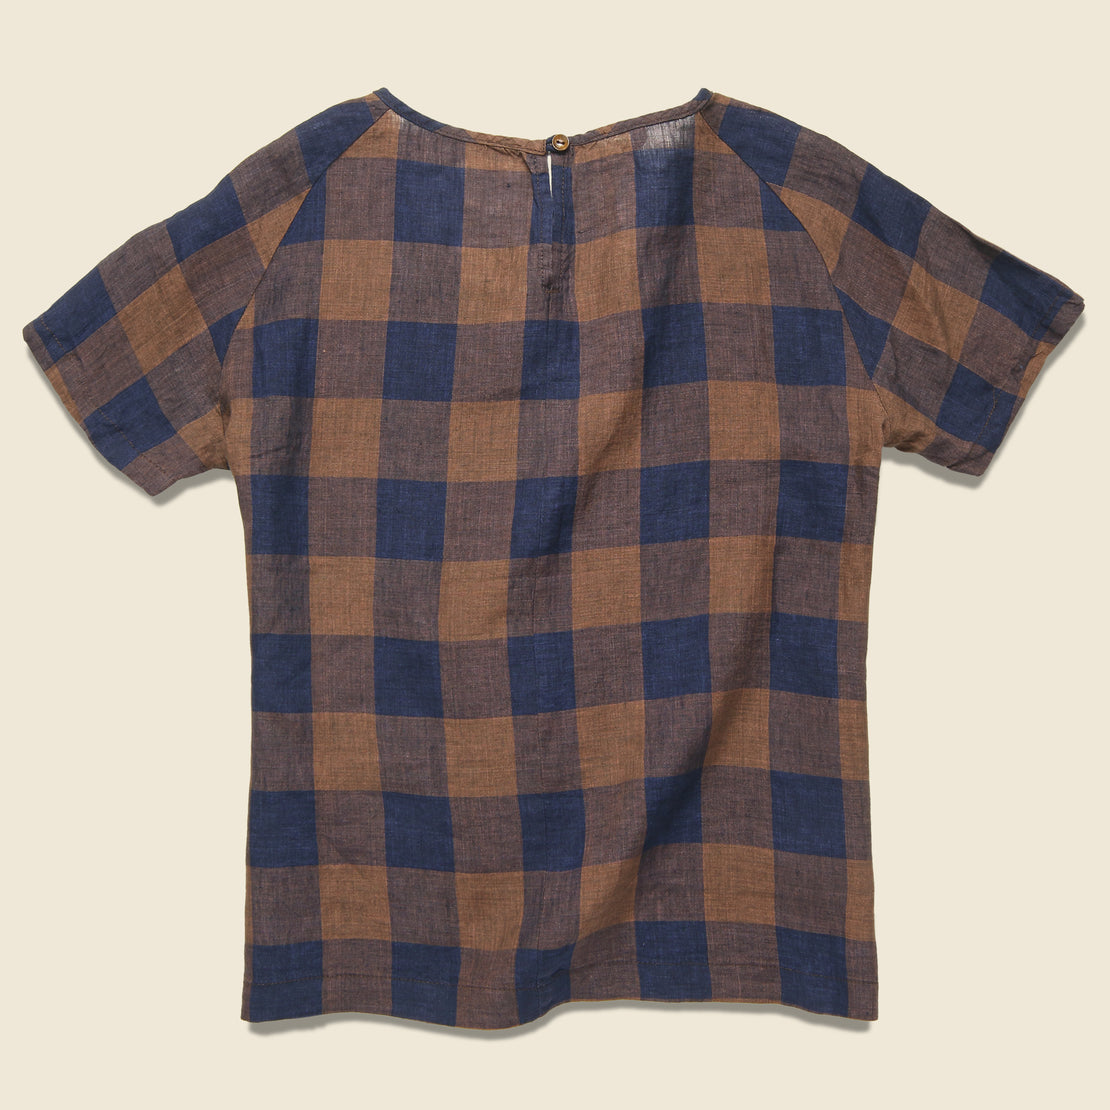 Reese Top - Navy/Rust Gingham